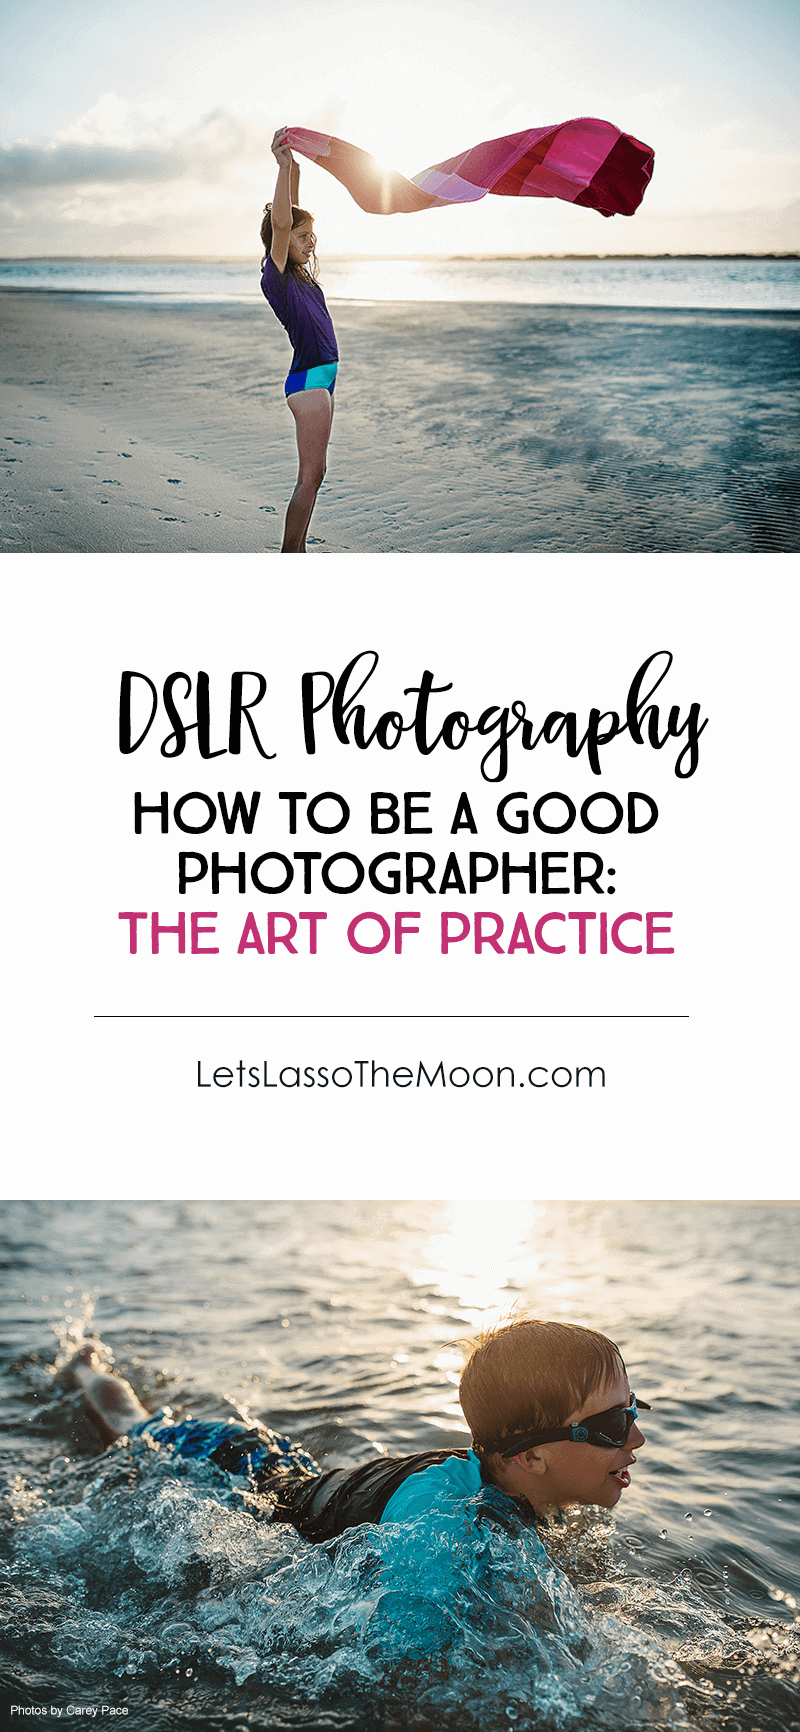 This provocative piece on how to be a good photographer and the lost of art of practice is enlightening. #photography #DSLR #photographytip *Love the photo examples and the advice too. So good.